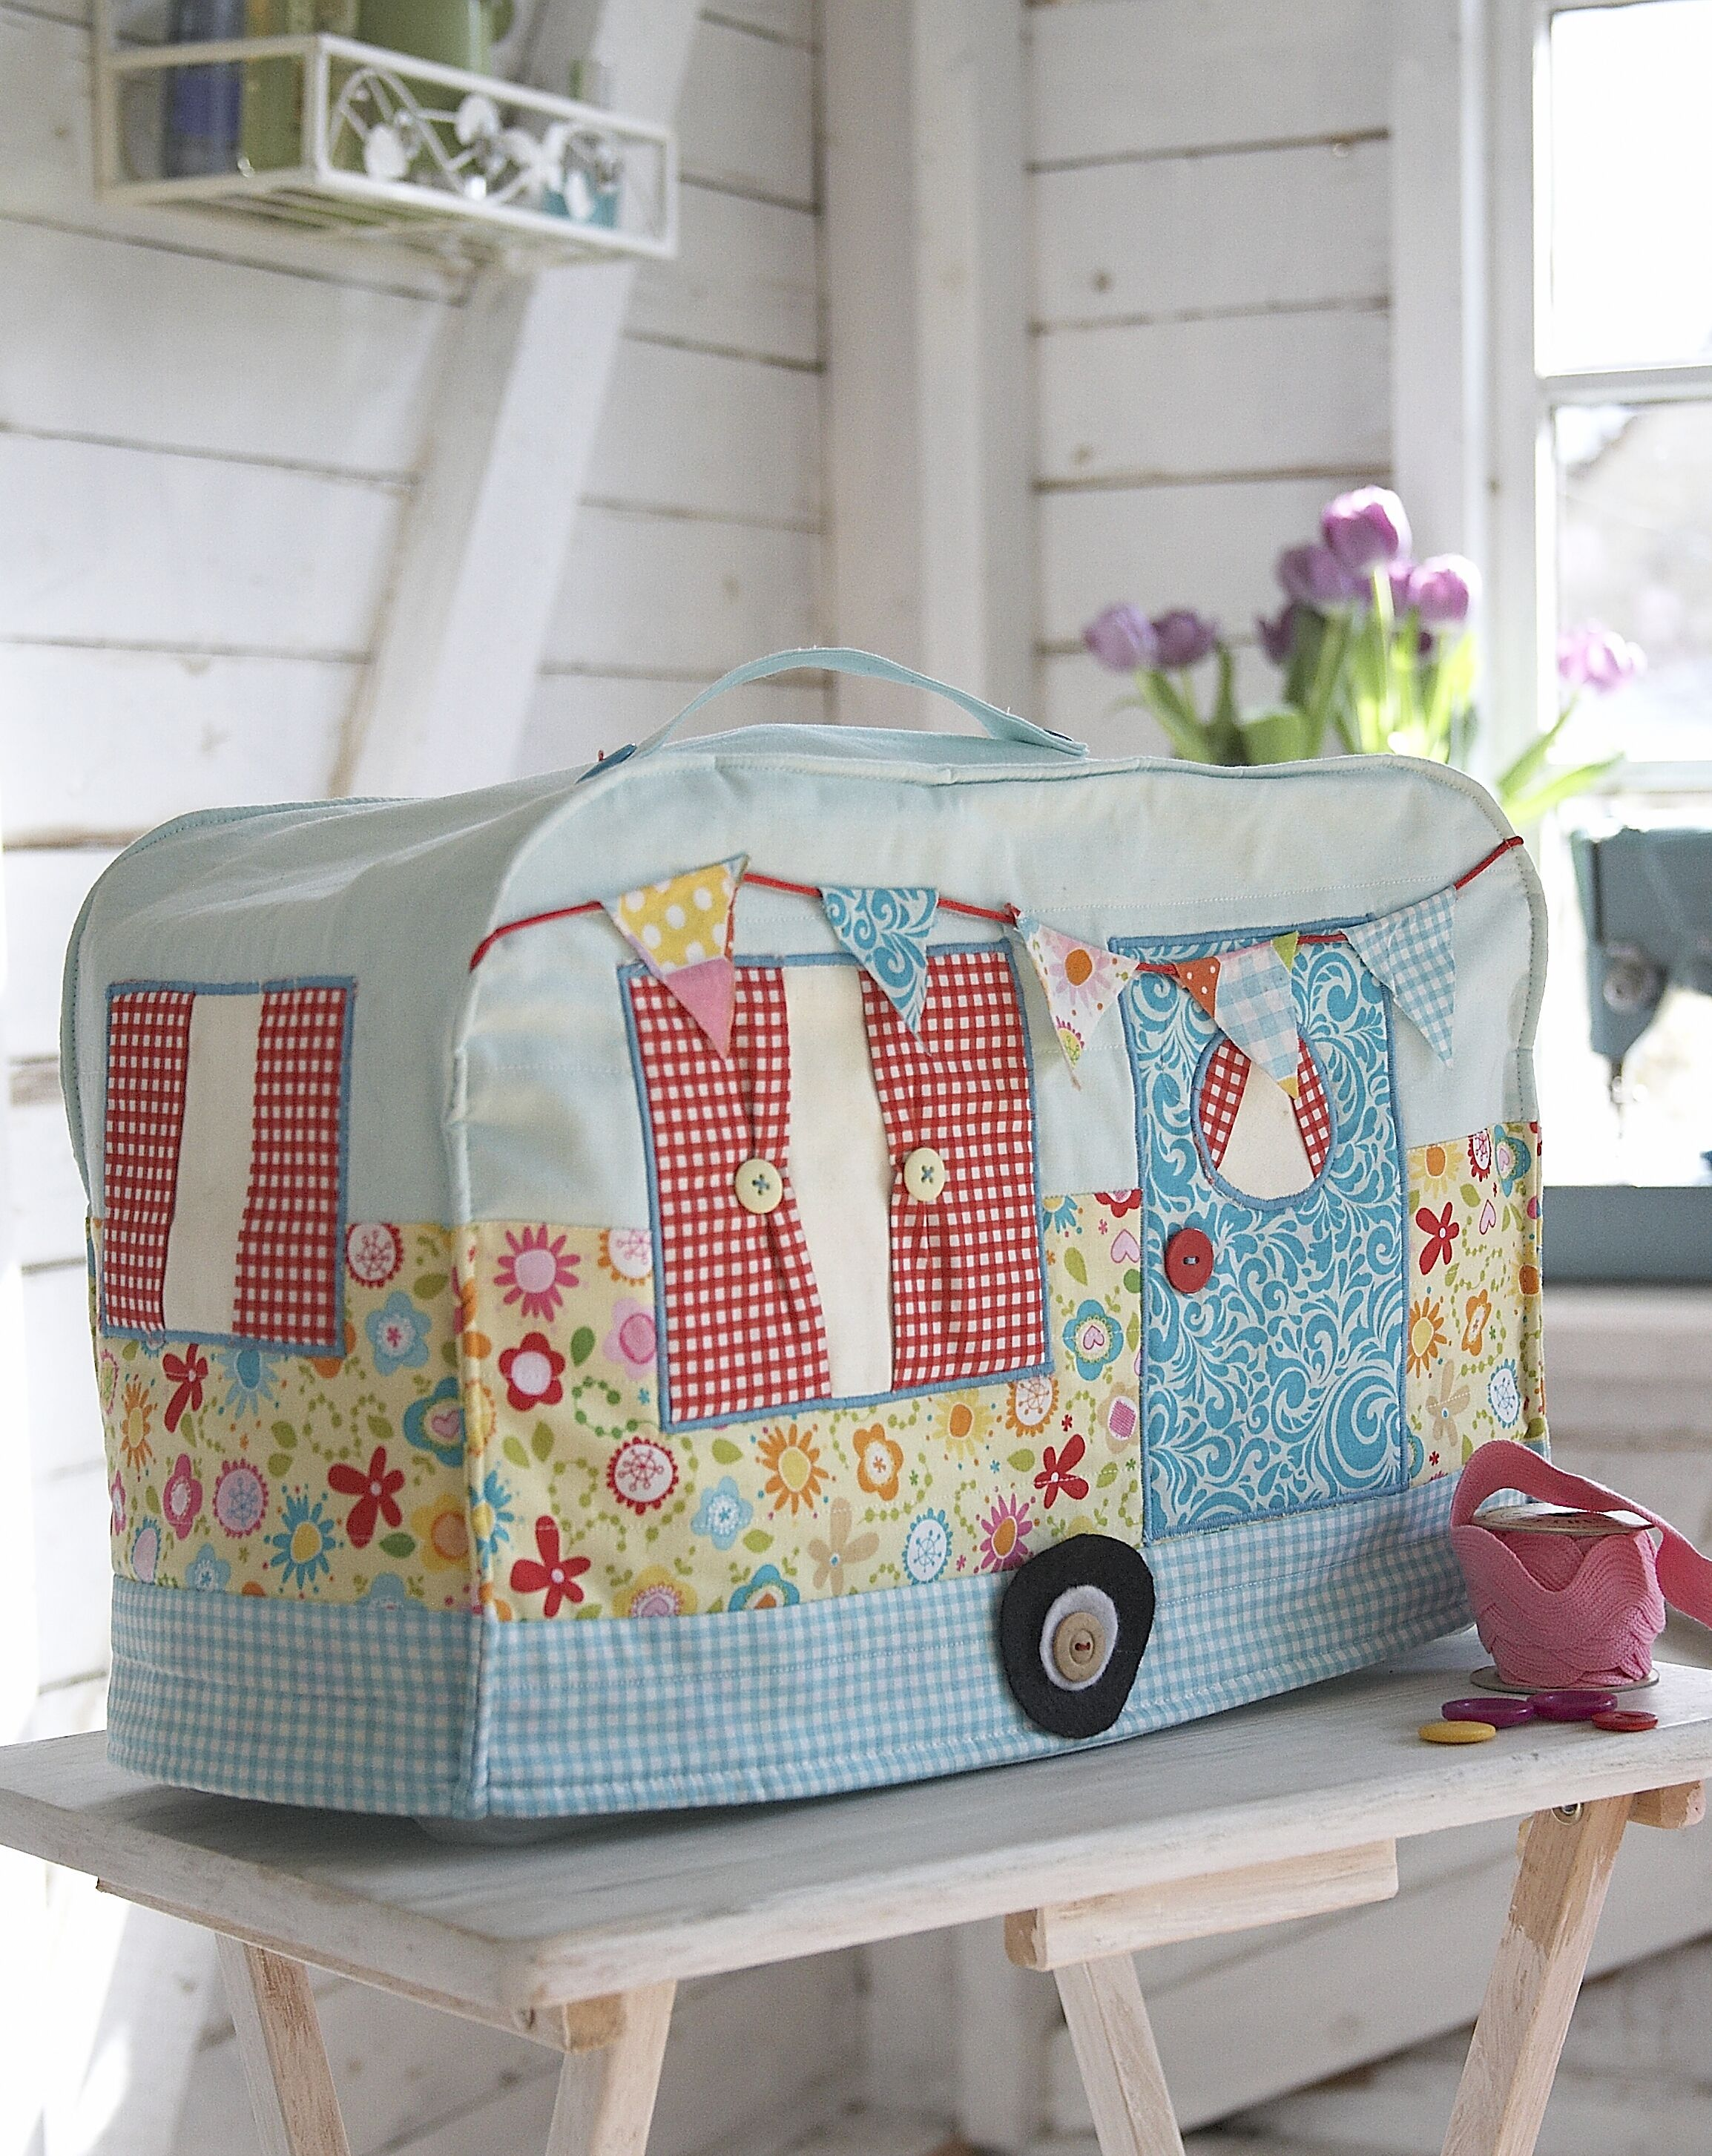 Easy Sewing Projects for Beginners | Pinterest | TVs, Patterns and ...